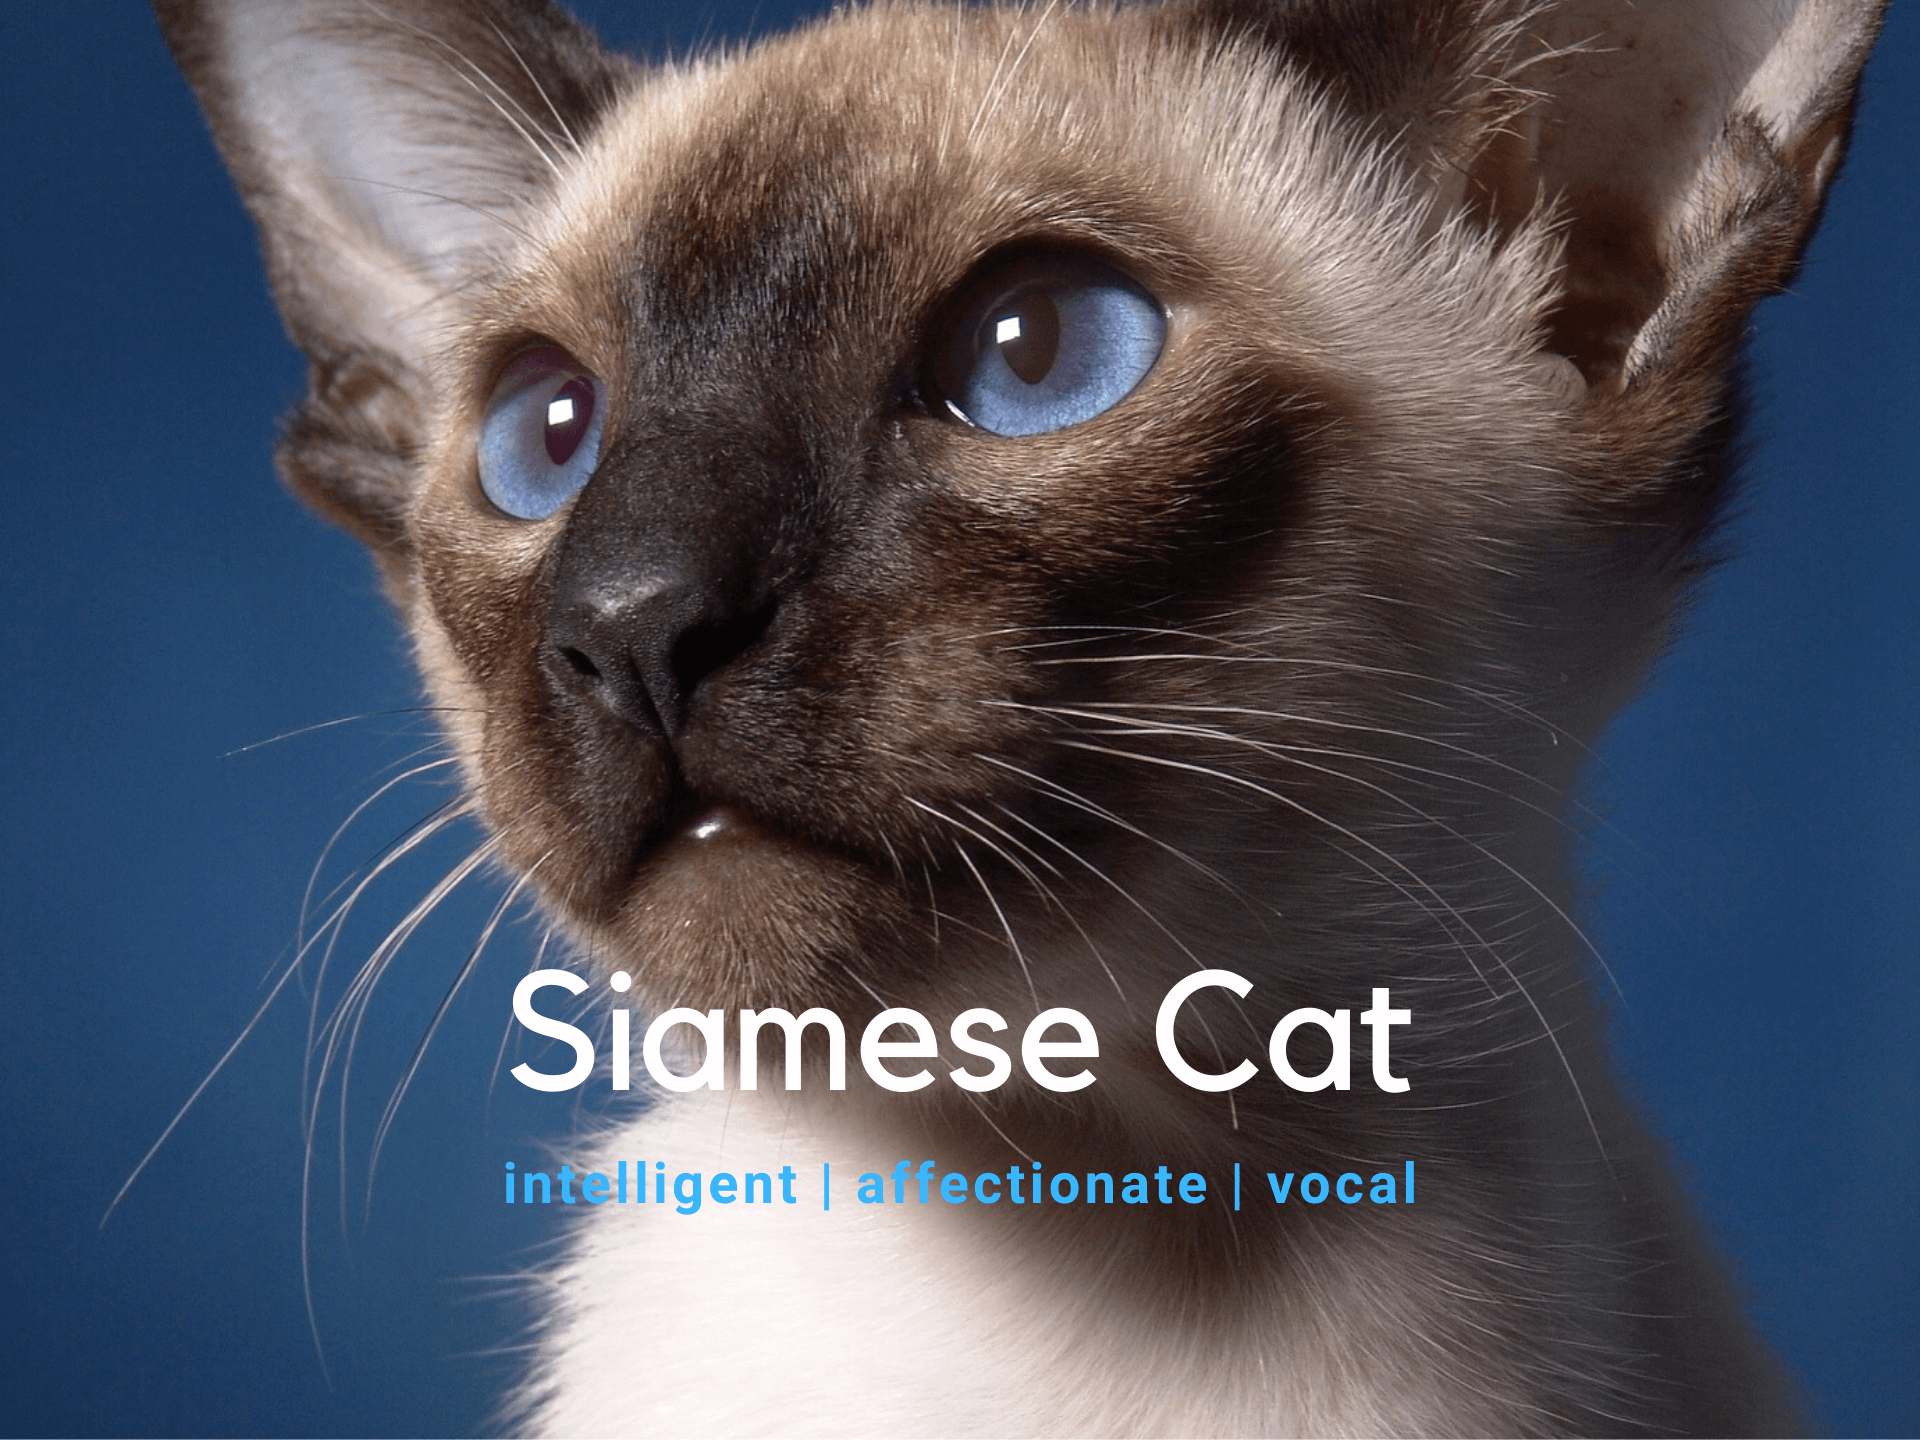 Siamese Cat - Breed Information